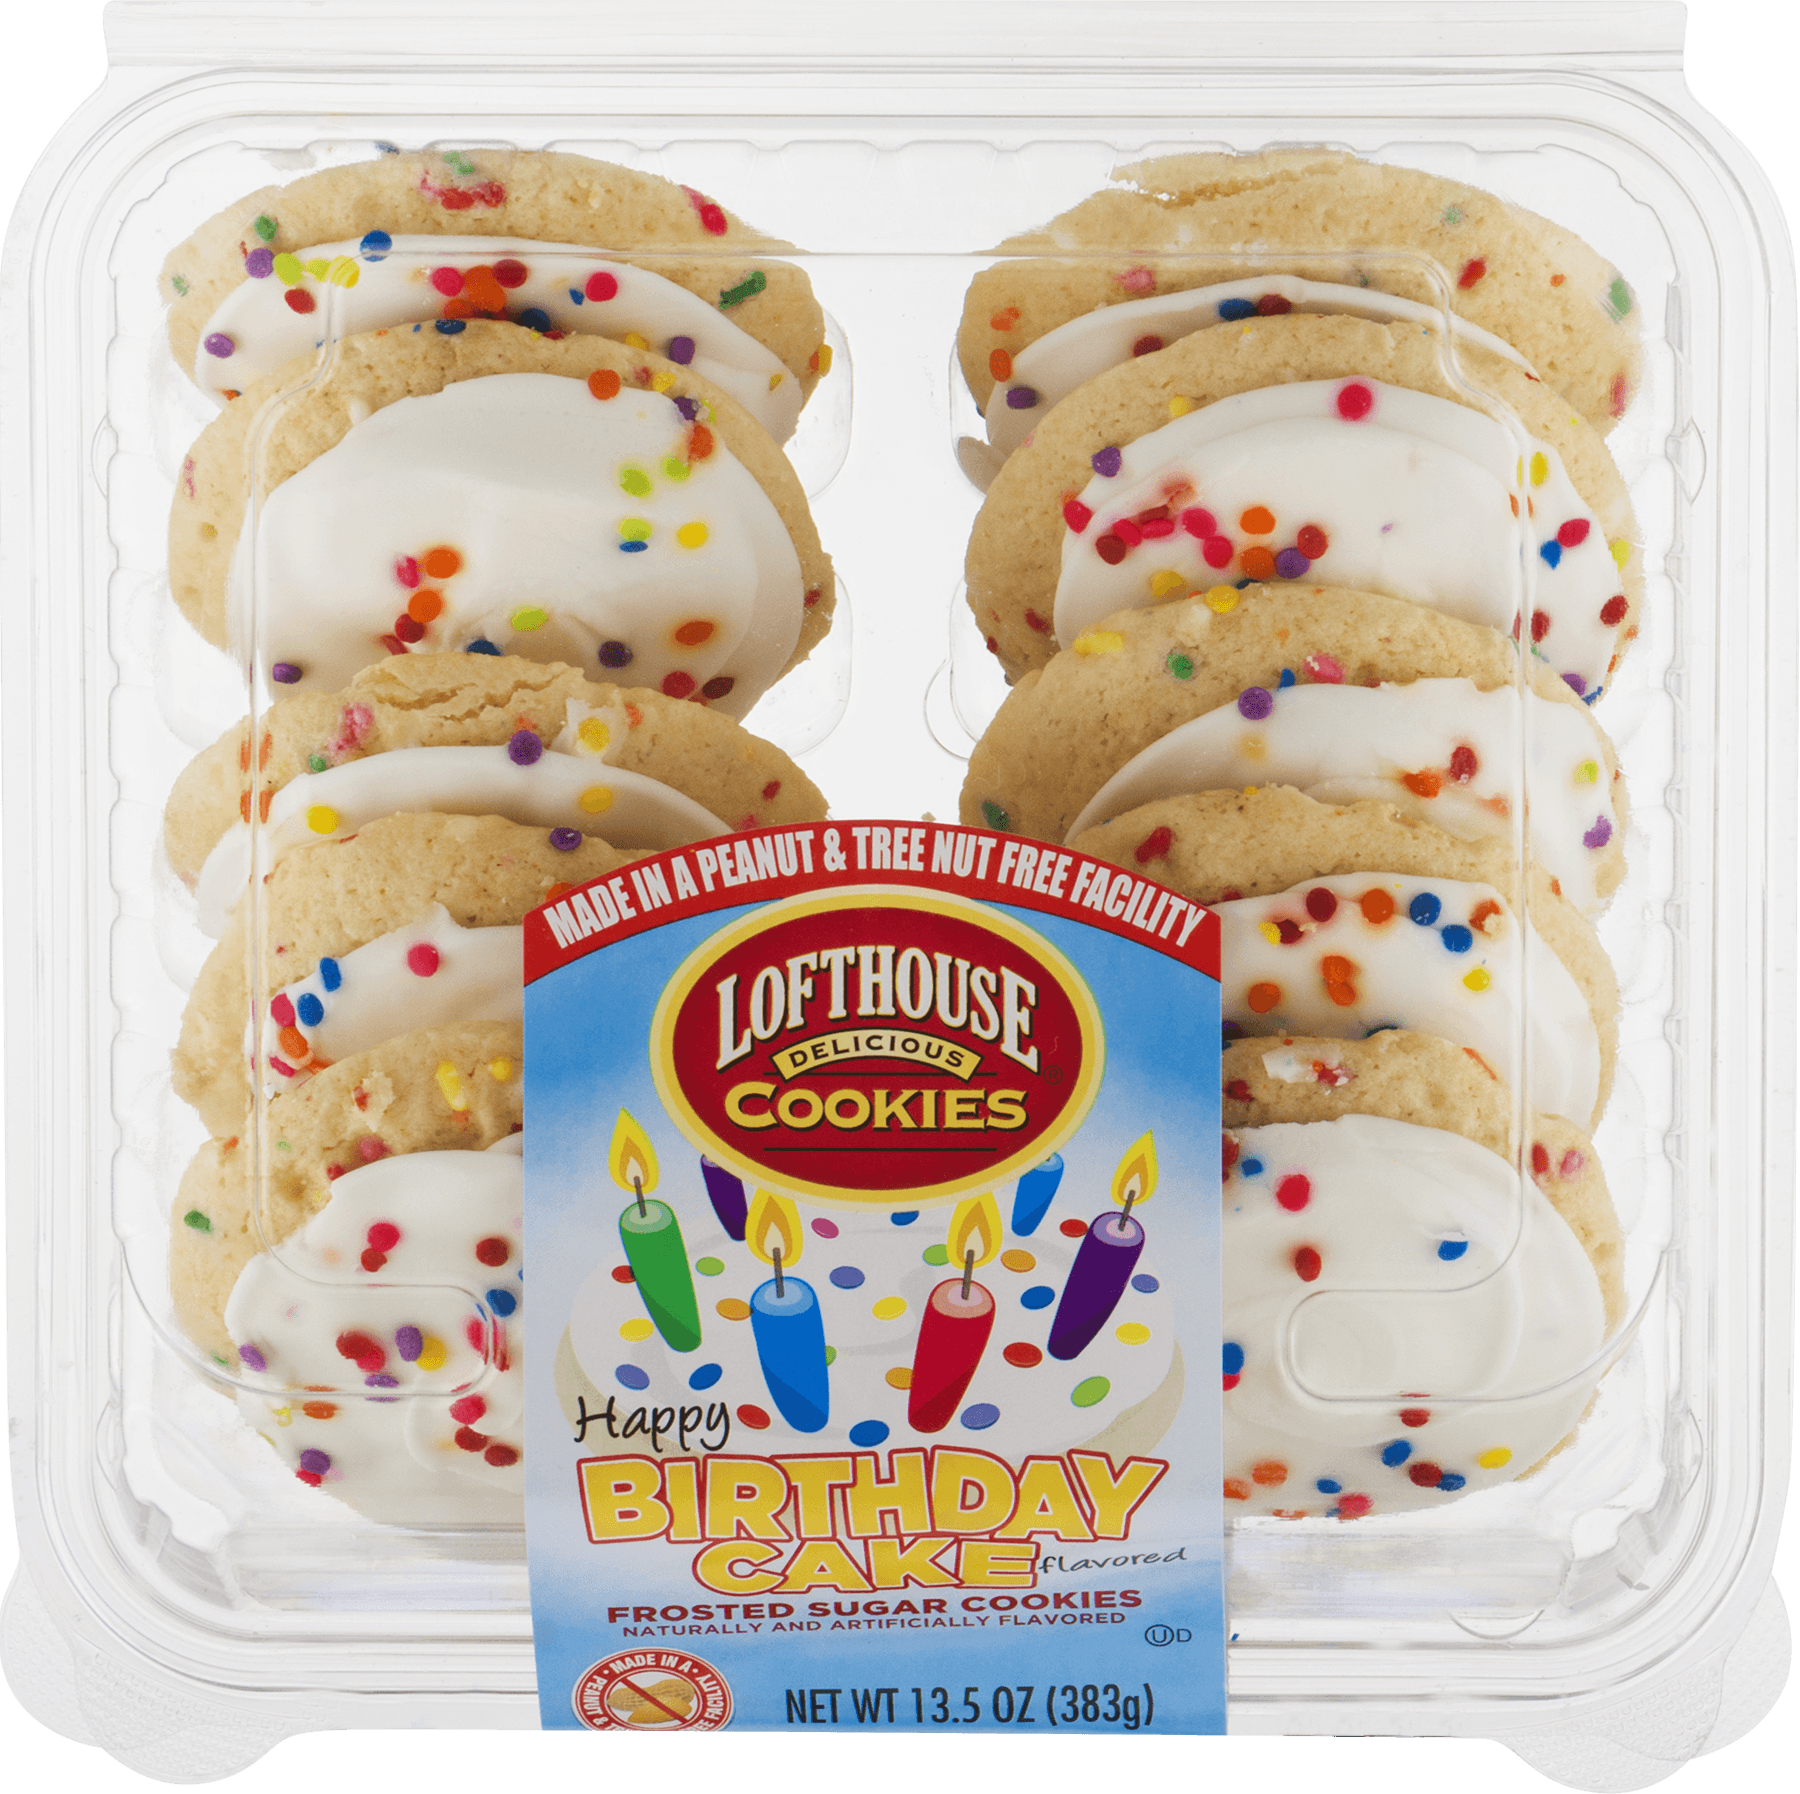 Lofthouse Delicious Cookies Happy Birthday Cake Flavored 135 OZ